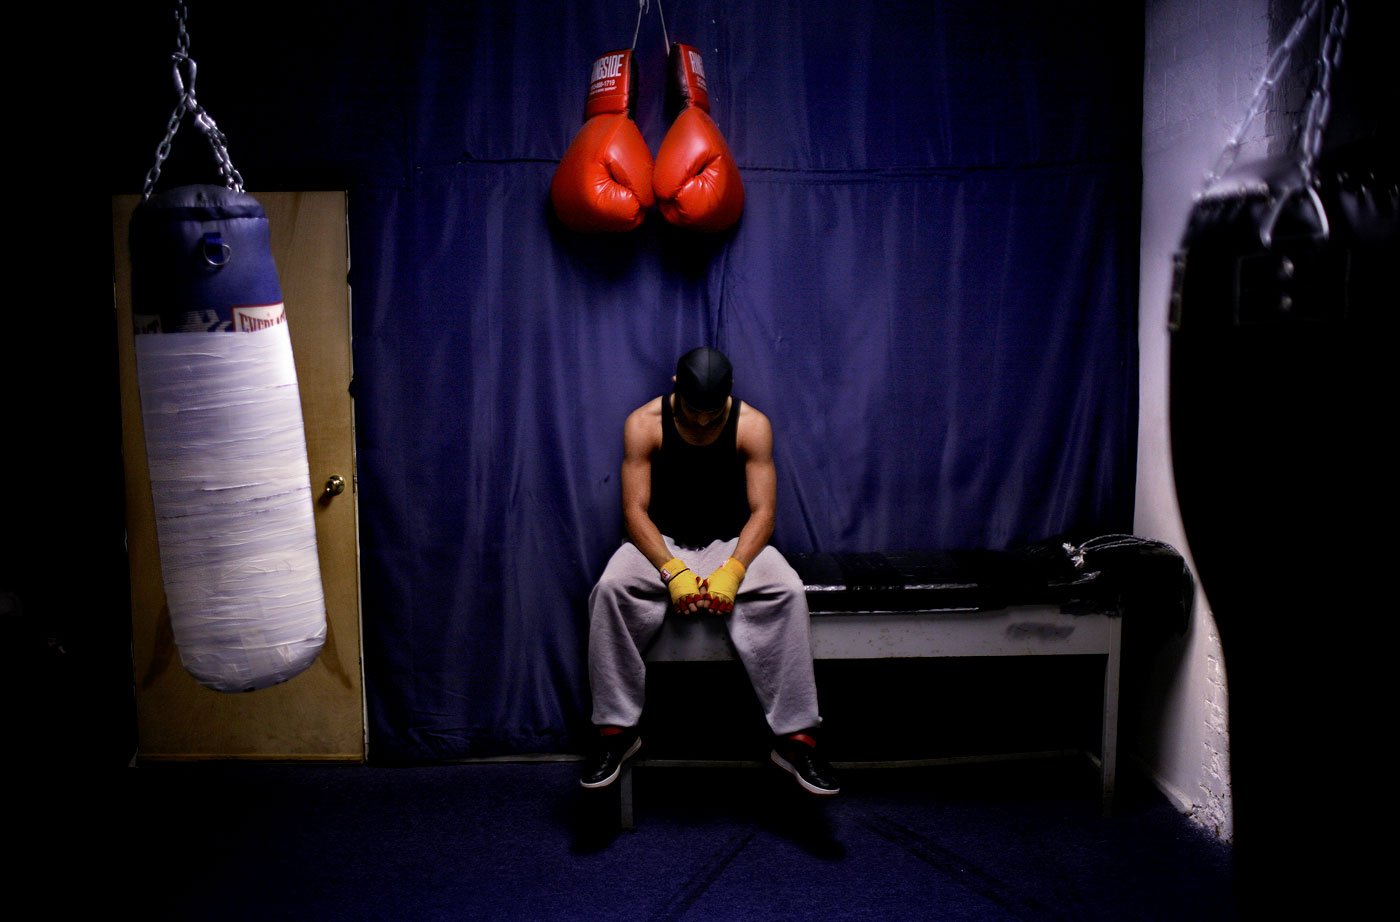 Victor Maldonado, 19, rests while working out at the San Juan Center Sports in Hartford.  Maldonado is from Hartford and works out in the afternoon, when the center has a program for area youth. The center provides an alternative for youth other than hitting the streets in the afternoon. &quot;We're here for the community, if anyone needs help, we're here,&quot; said Andrea Montero, who is the assistant director for the center. 